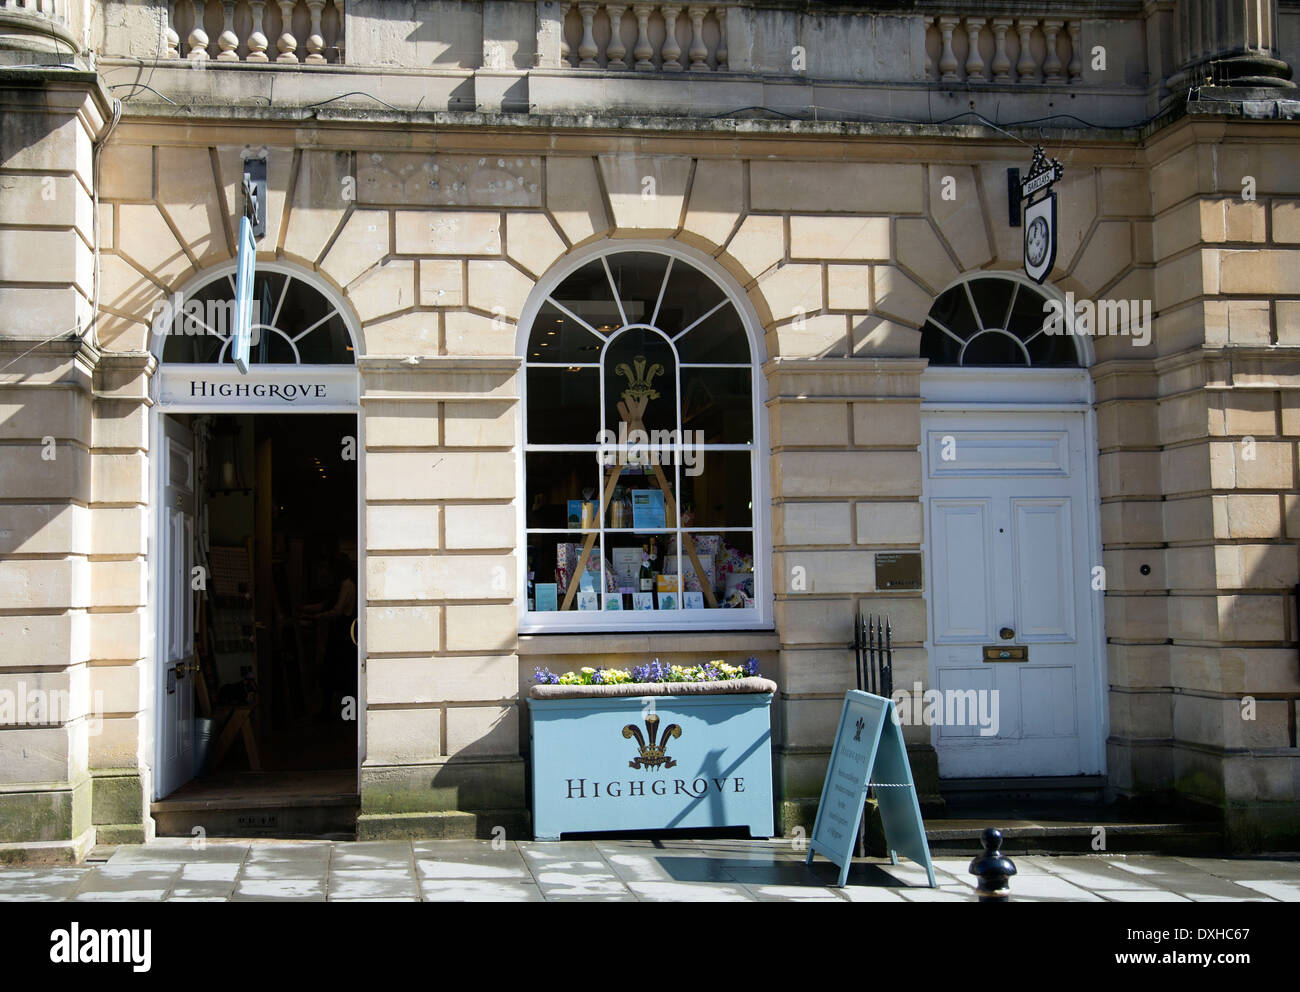 Highgrove store shop Prince Charles posh outlet - Stock Image